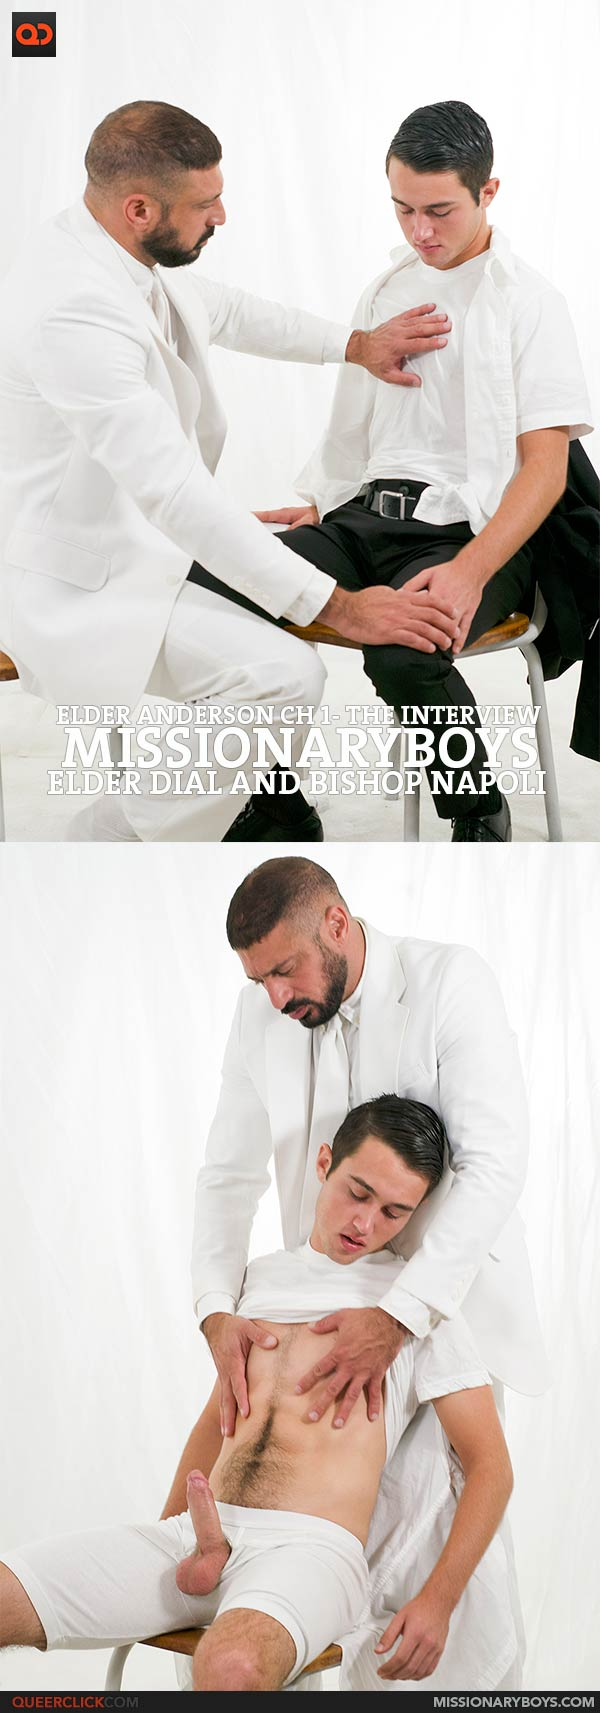 Missionary Boys: Elder Anderson Ch 1- The Interview with Elder Dial and Bishop Napoli